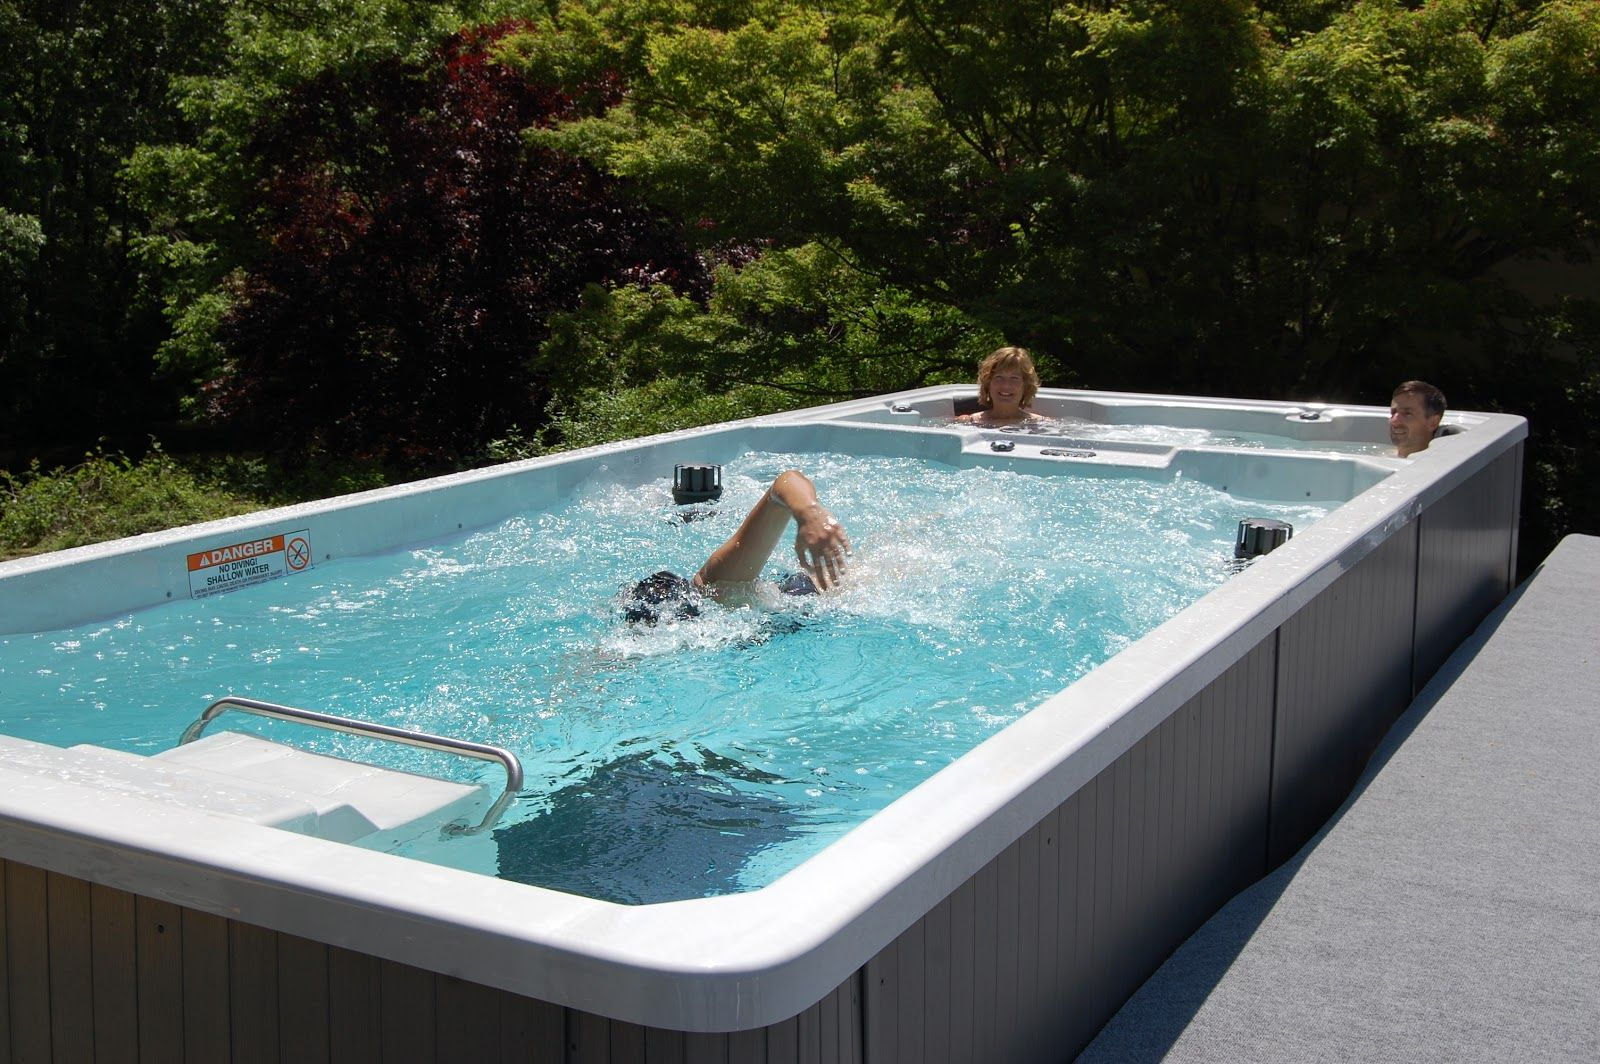 Jacuzzi Endless Pool Swim Spa Images The Endless Pool Swim Spa Offers Dual Use